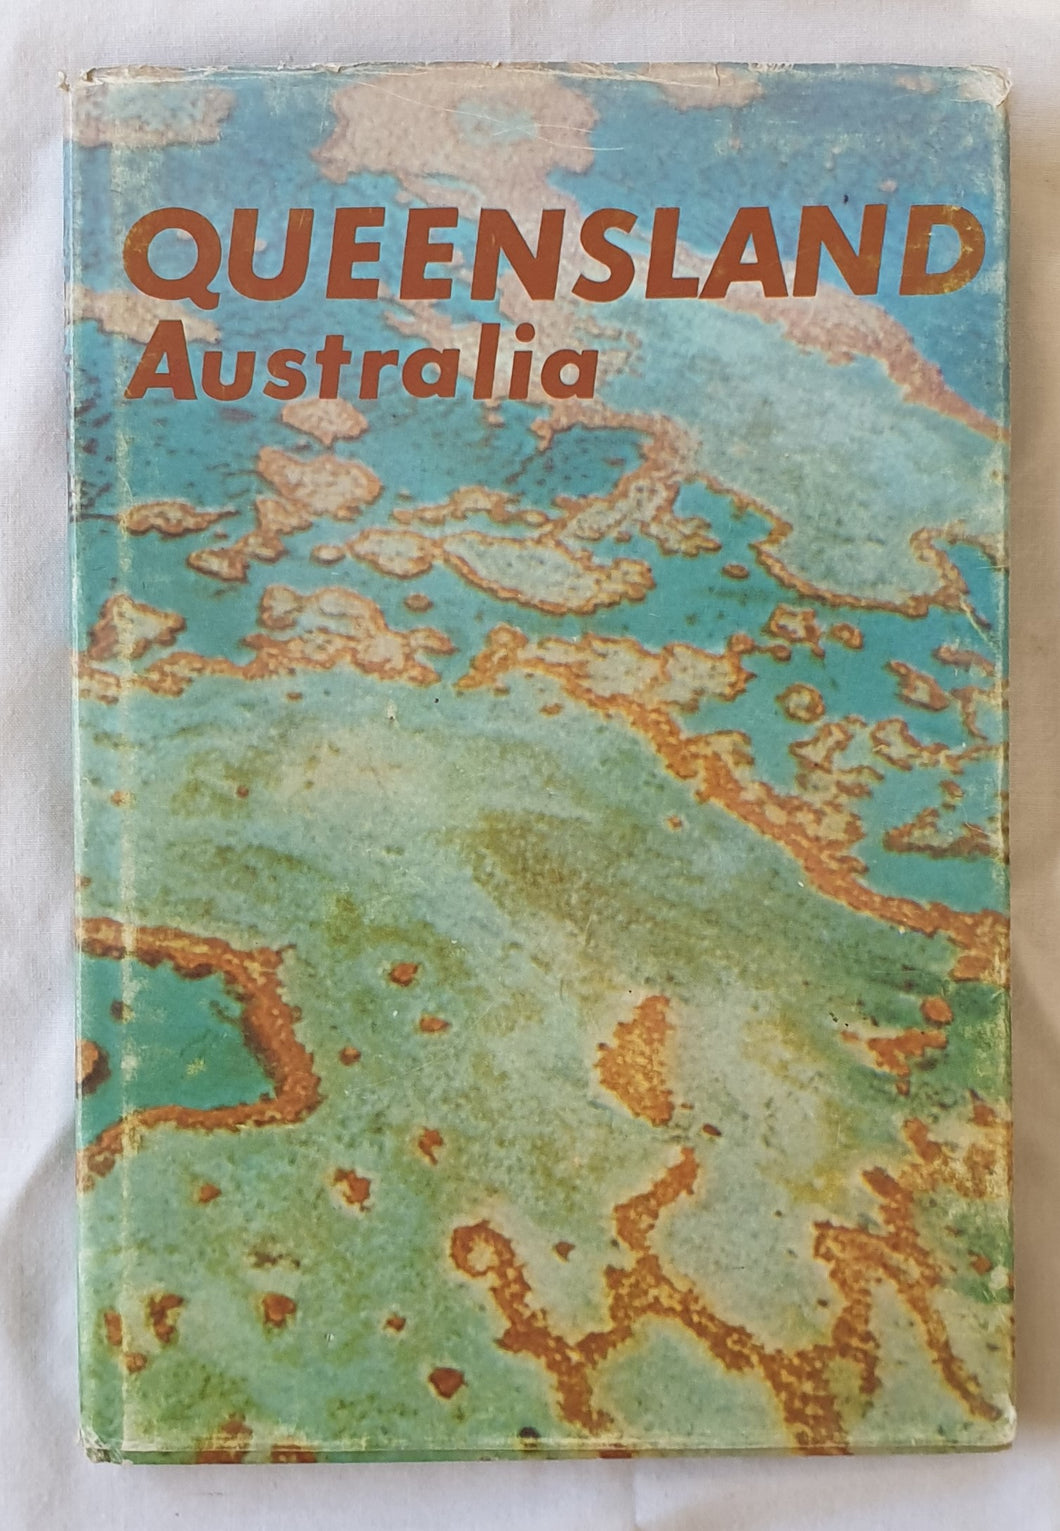 Queensland Australia  A concise outline of the history  Edited by Don Carisbrooke, Barry Wilson, Jack Smiles, Ross Campbell-Jones, Charles Meeking, Frank S. Greenop, Jack Child and Susan Lewis